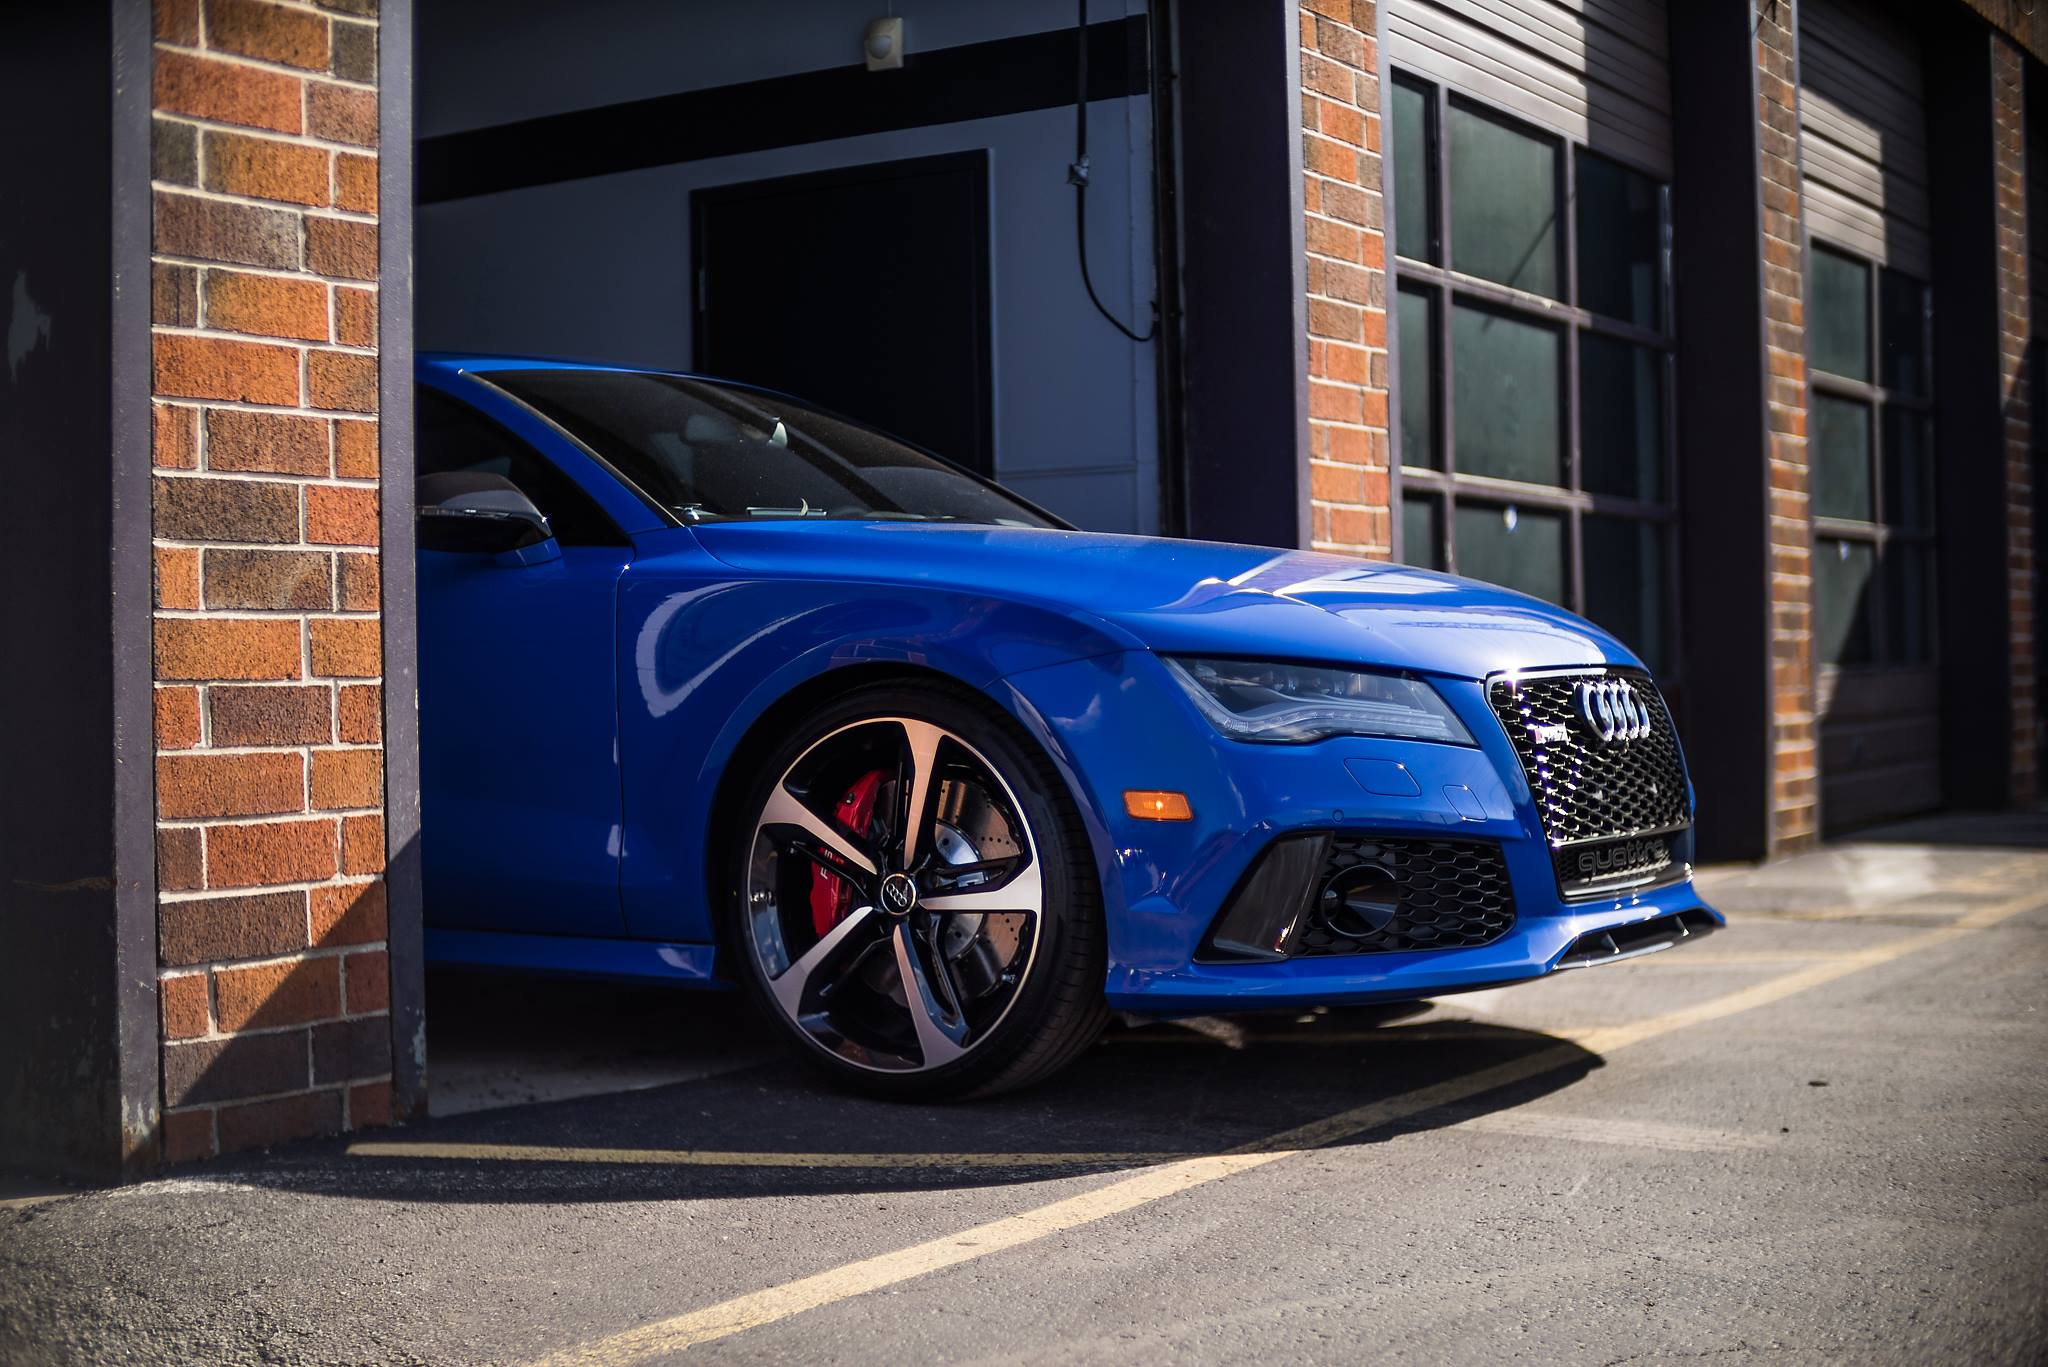 2016 Audi Q5 >> Audi RS7 Triplets: Nagoro Blue, Estoril Blue and Sepang Blue - autoevolution